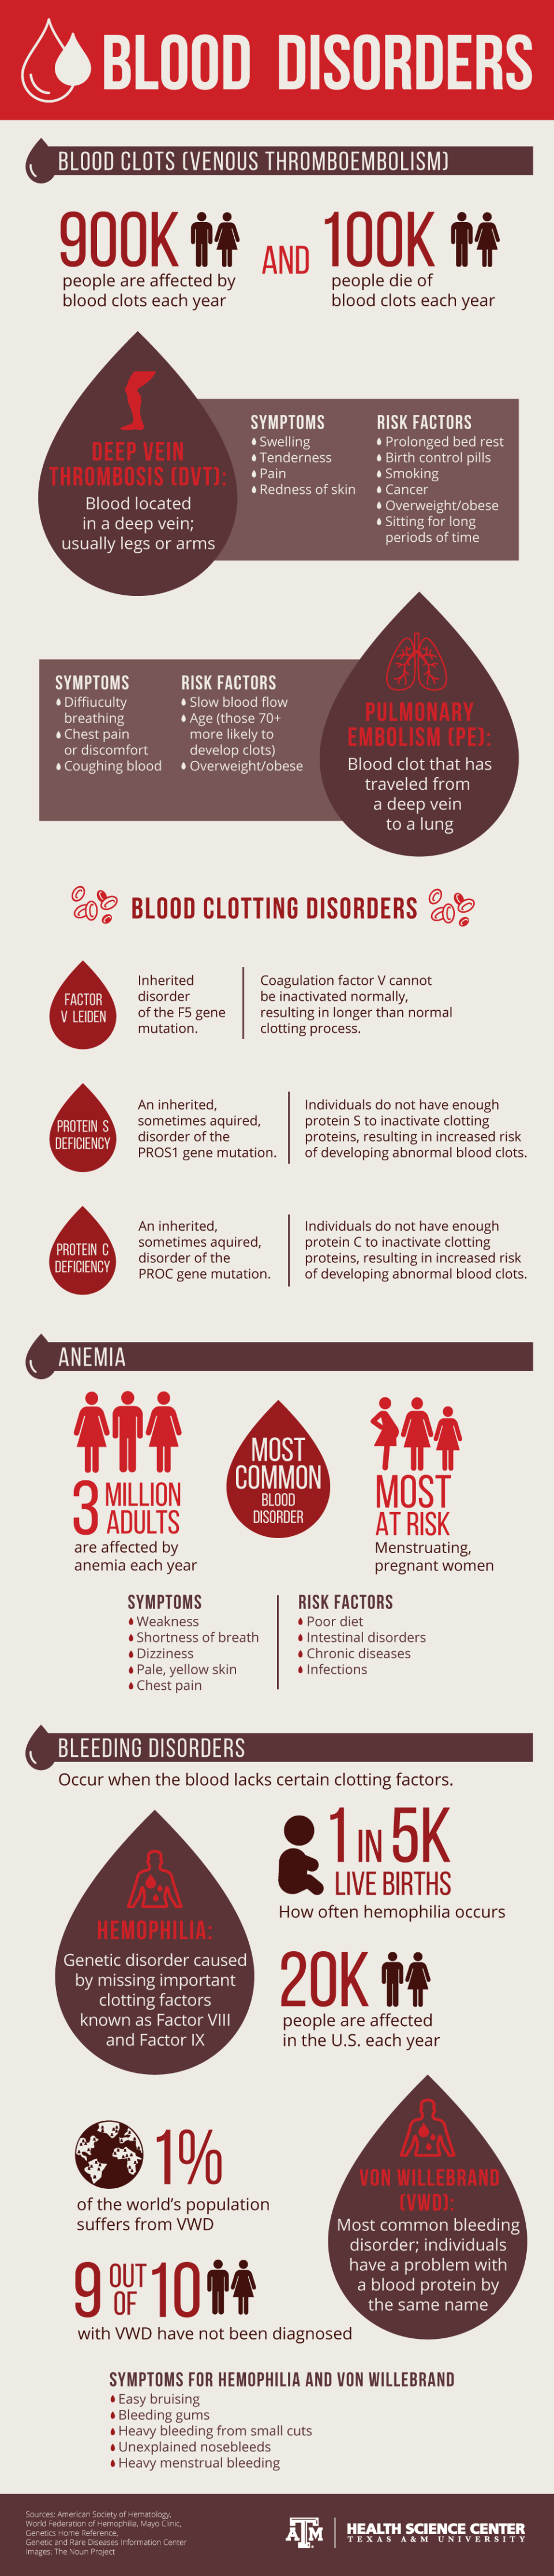 Bleeding and clotting Disorders Infographic